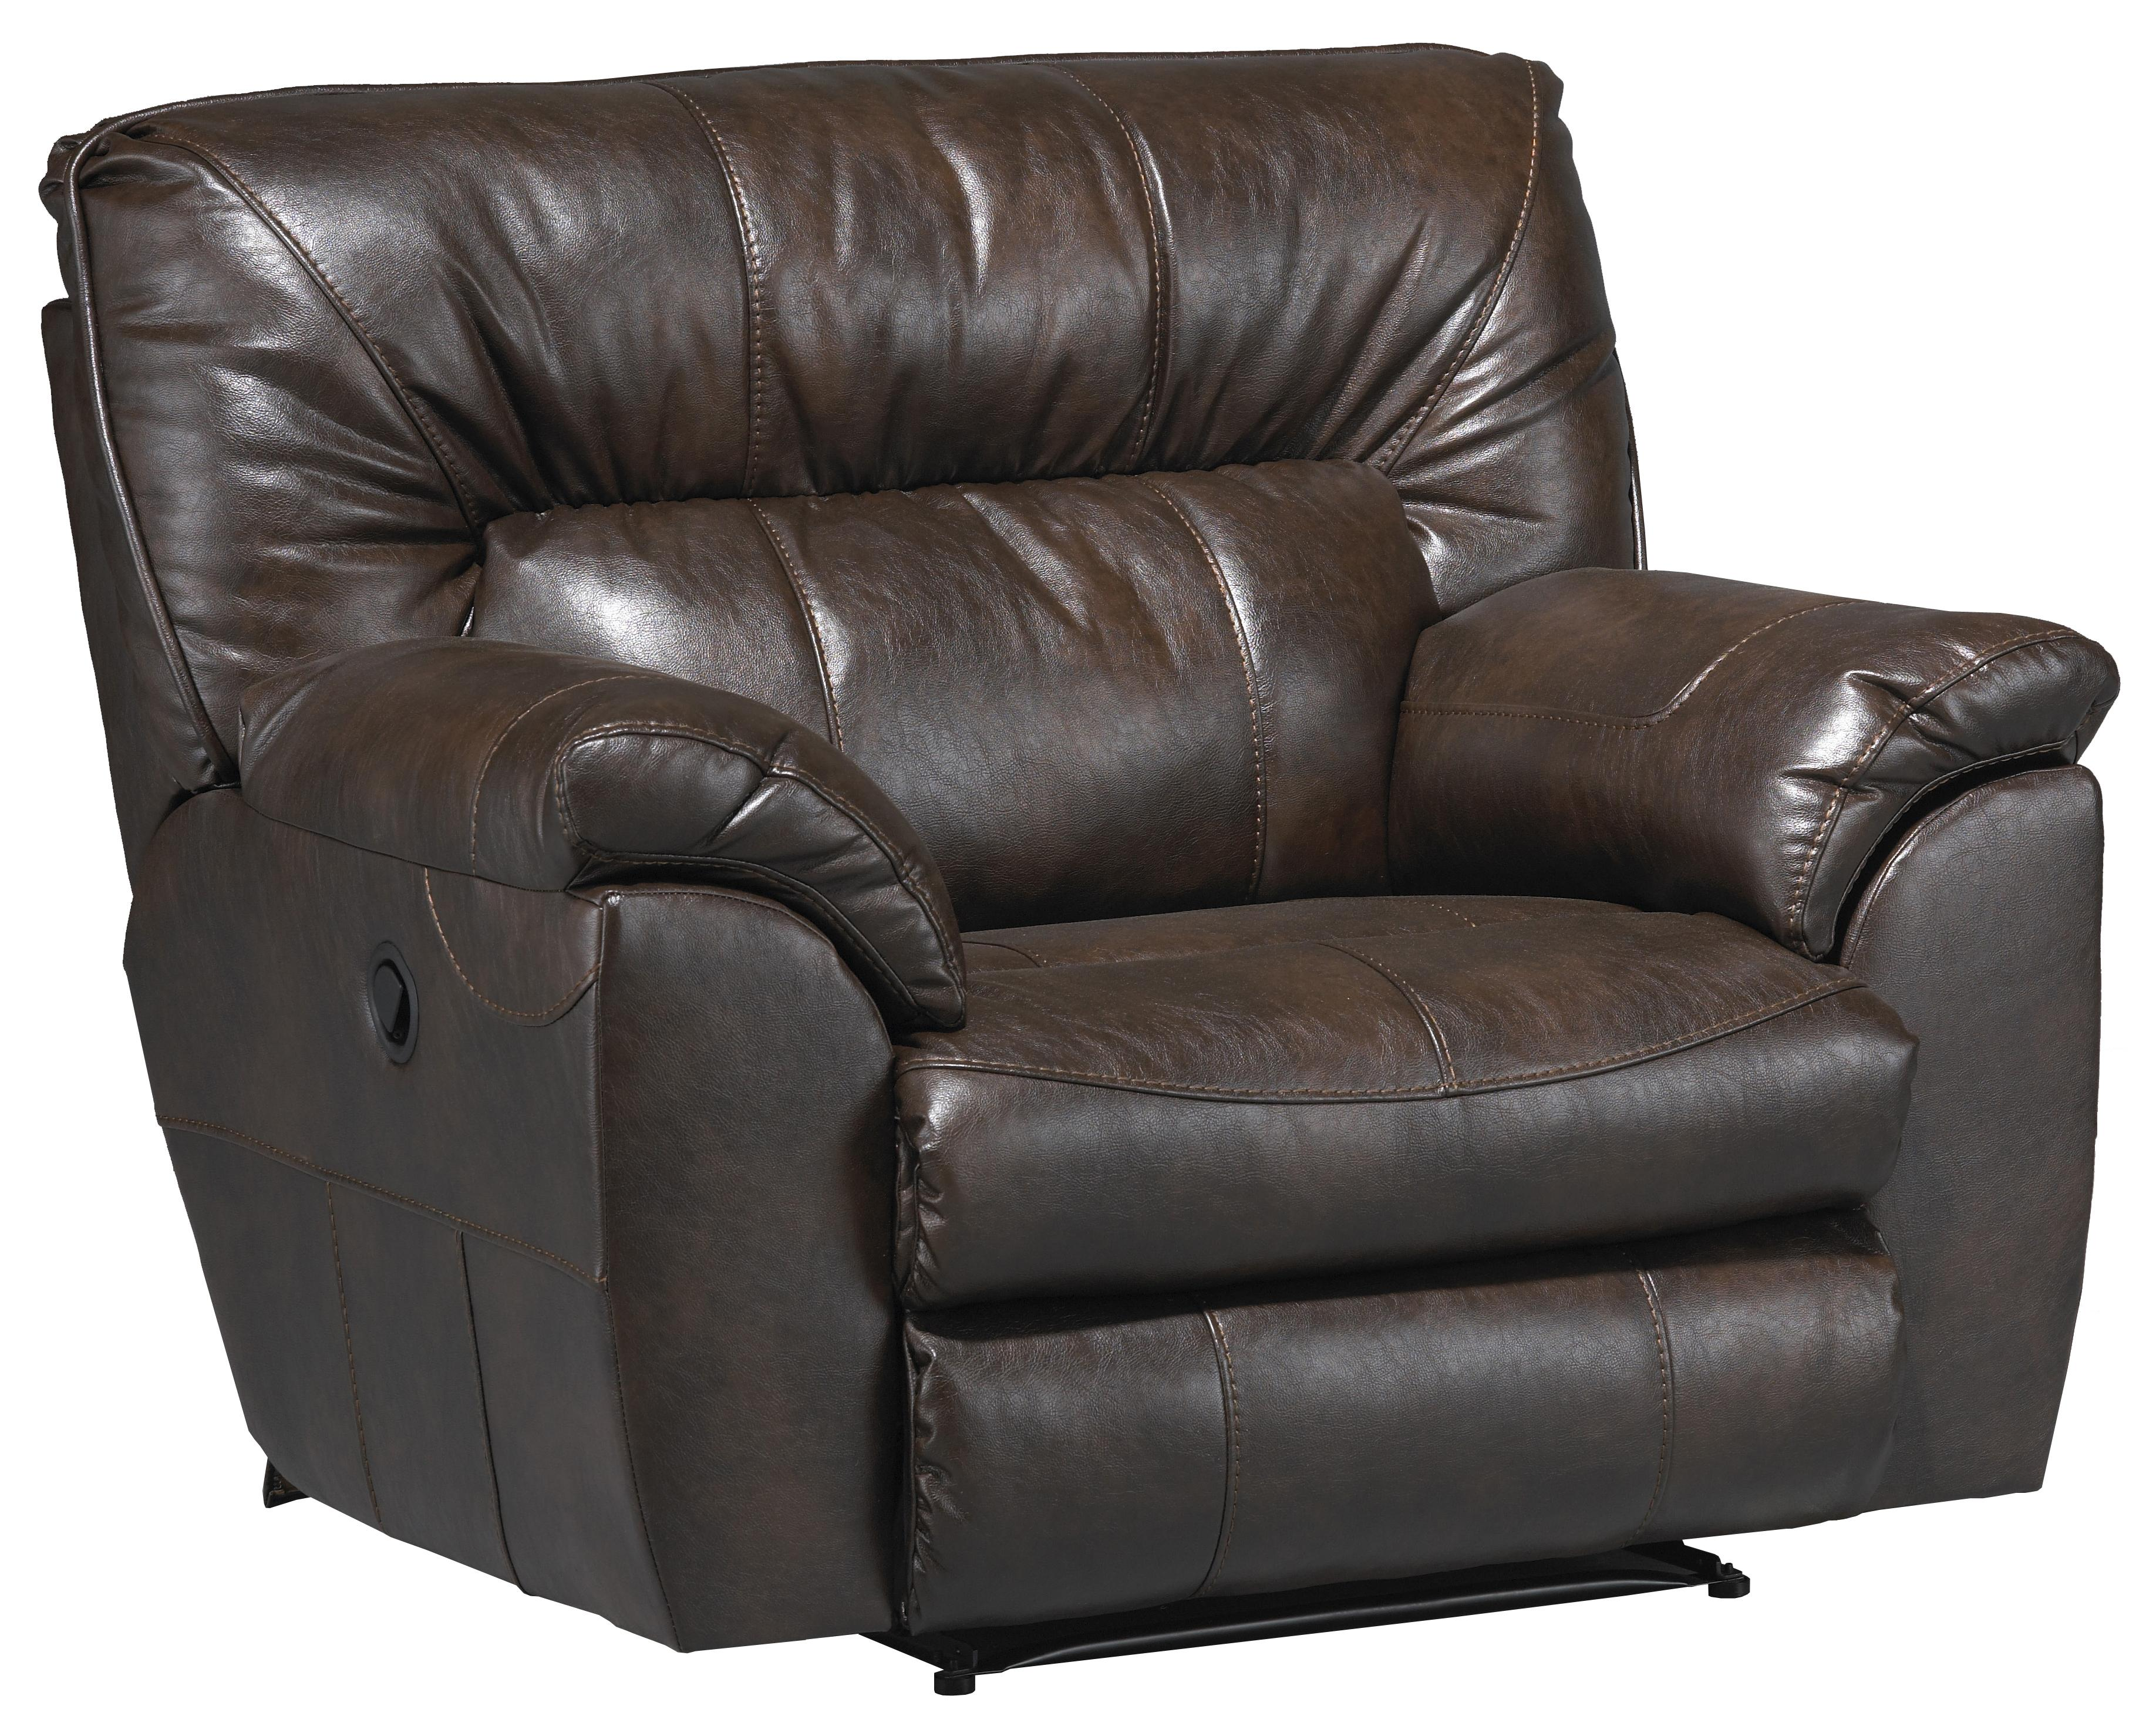 Catnapper Maverick 4040 4 Extra Wide Cuddler Recliner With